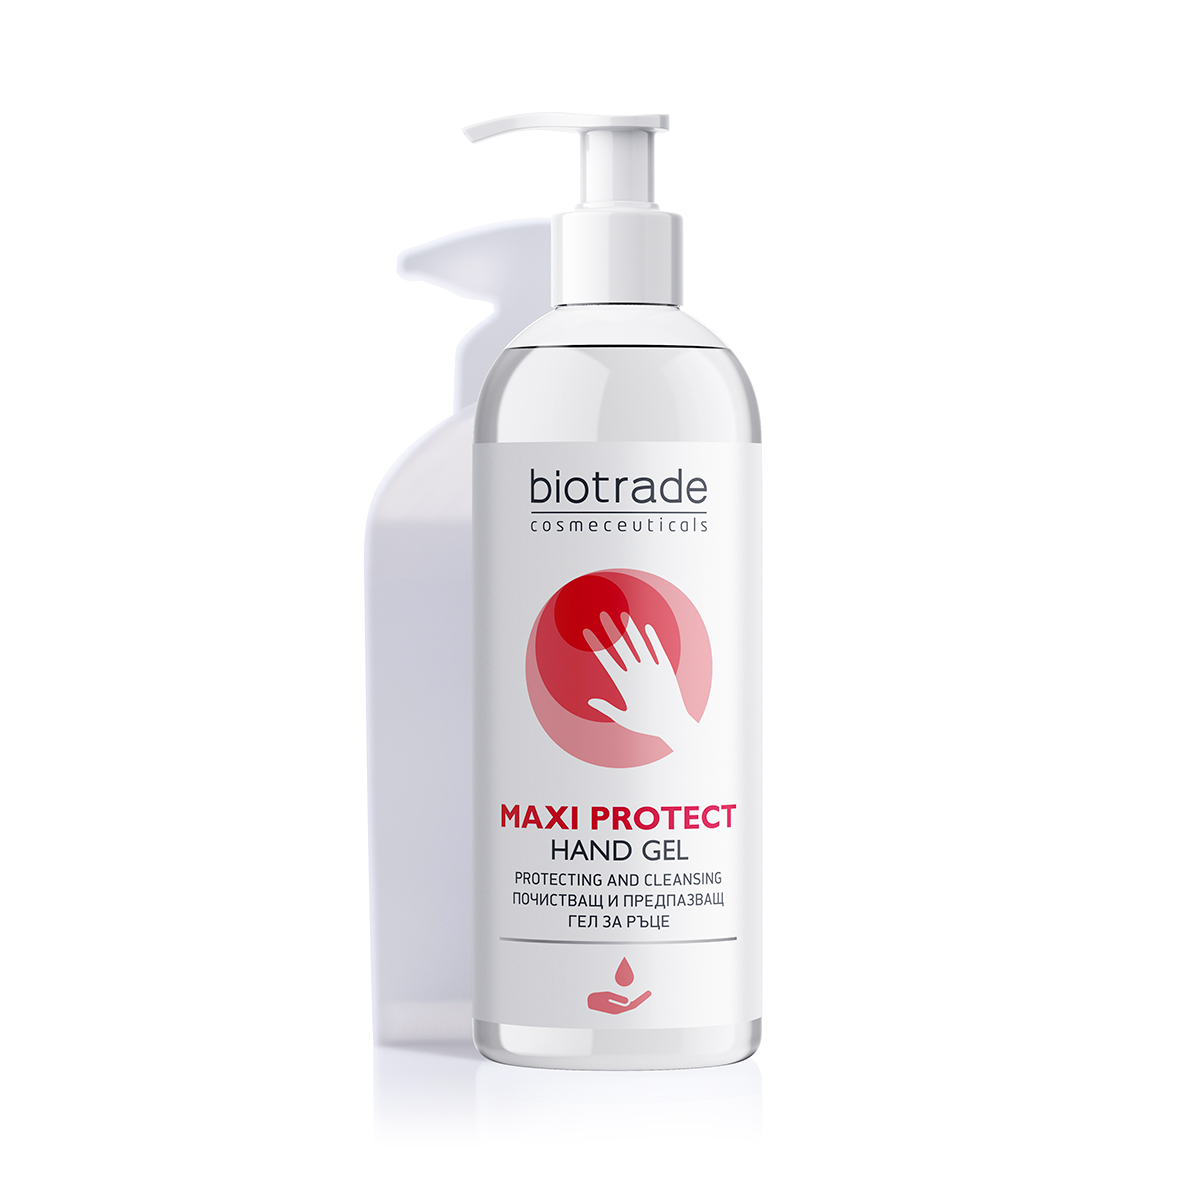 Maxi Protect Hand Gel